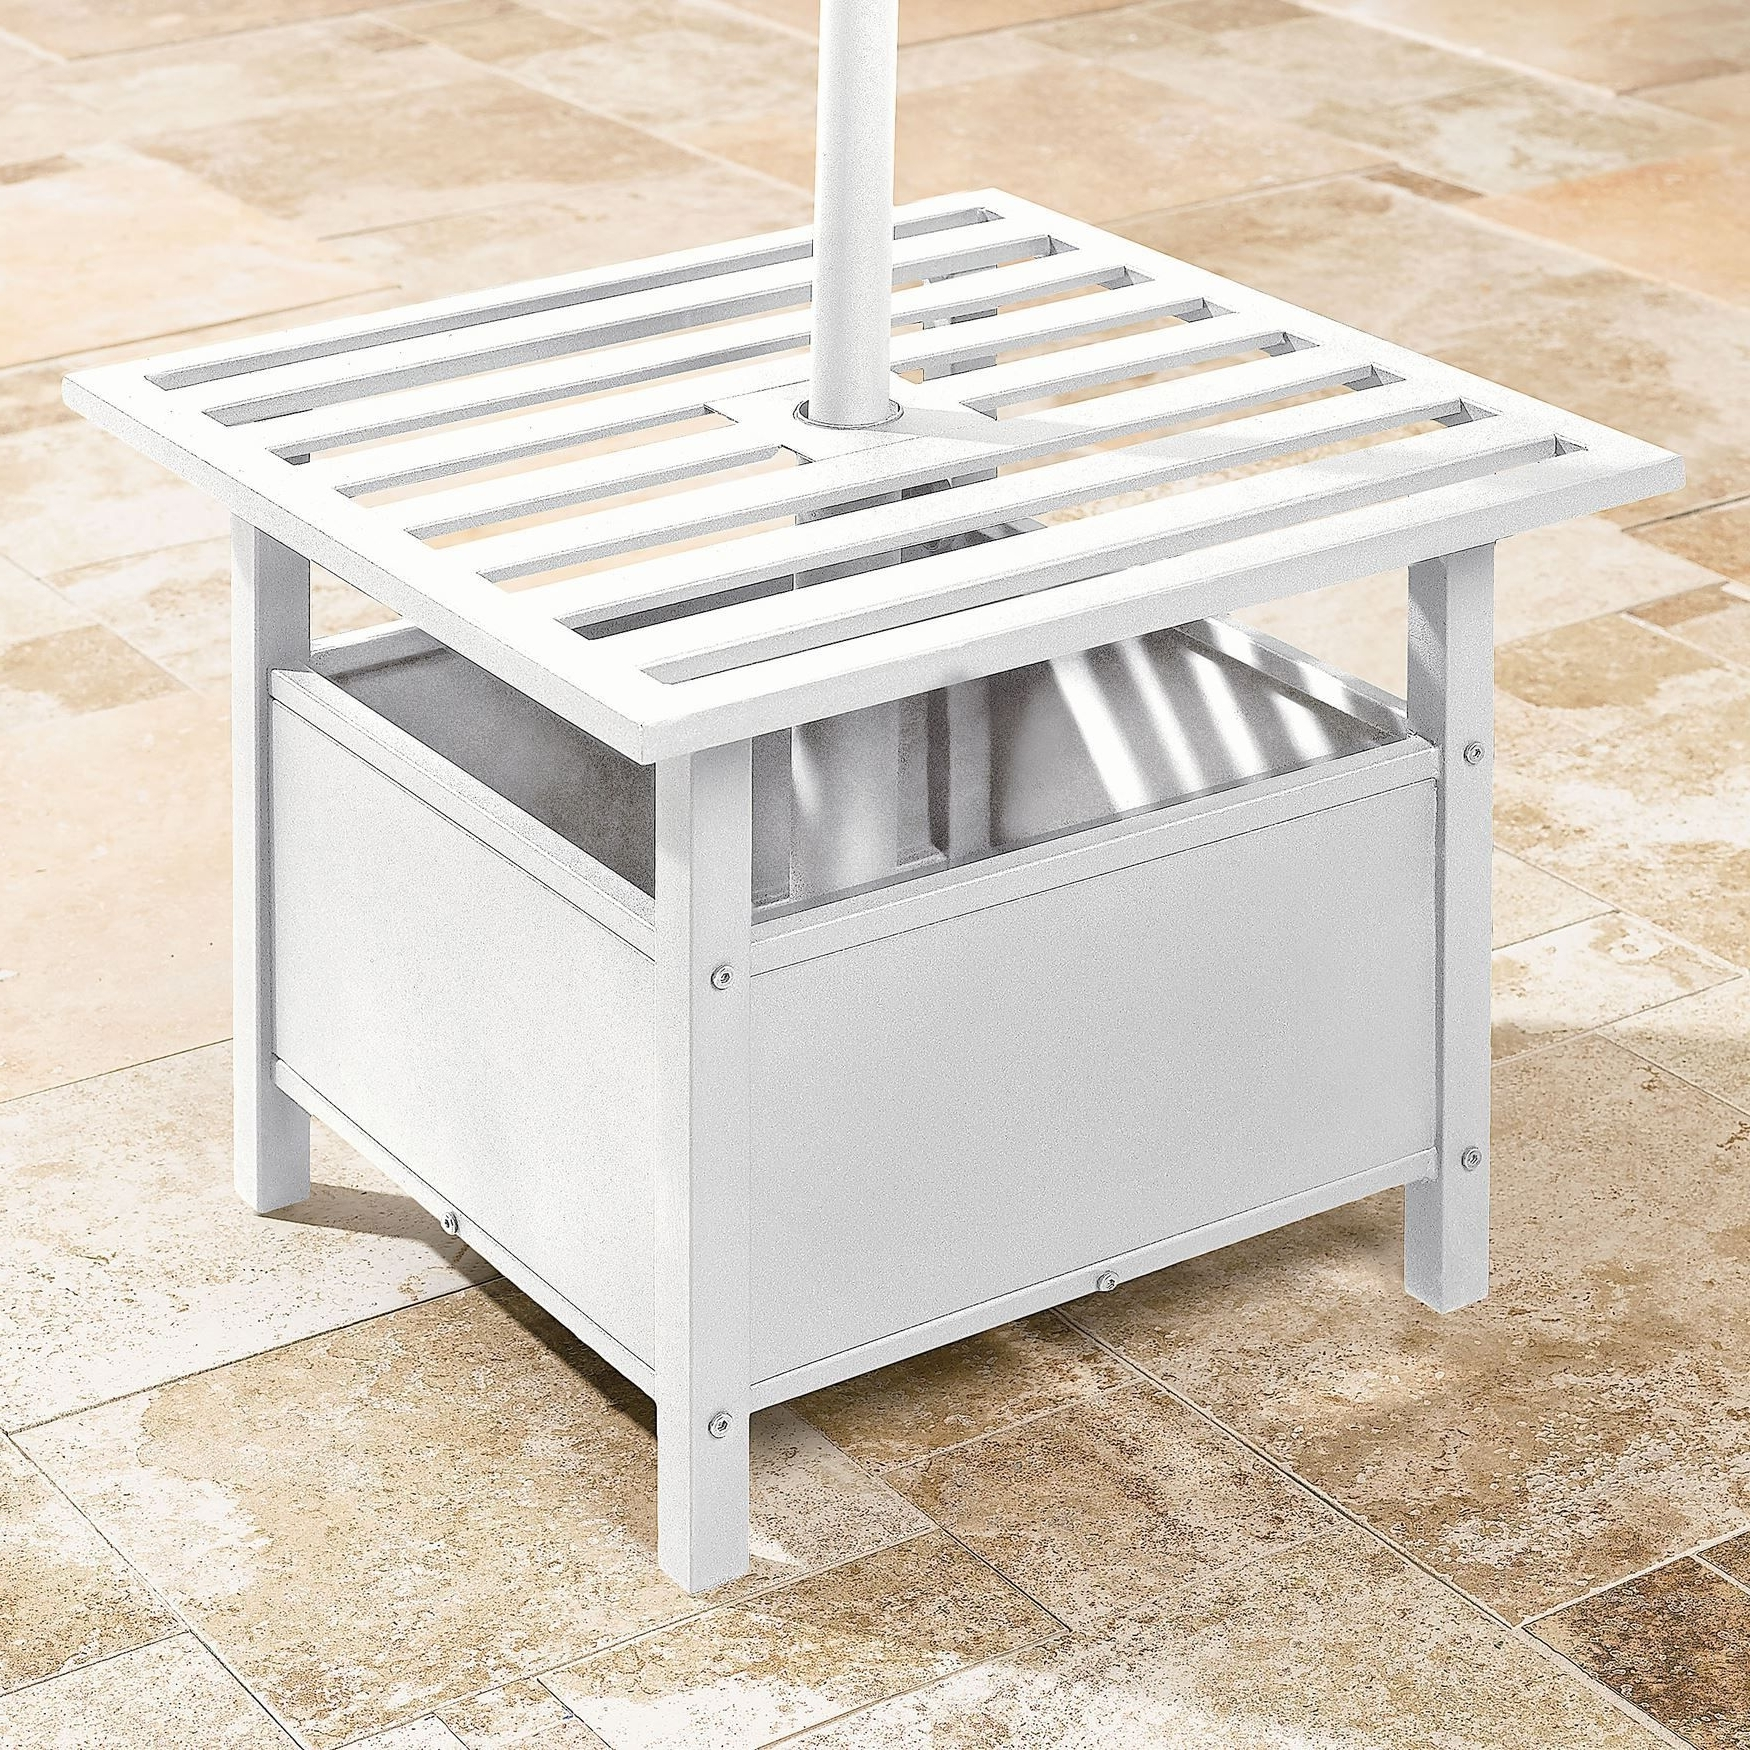 45 Patio Umbrella Stand Side Table, Hampton Umbrella Side Tables With Fashionable Patio Umbrella Stand Side Tables (View 7 of 20)